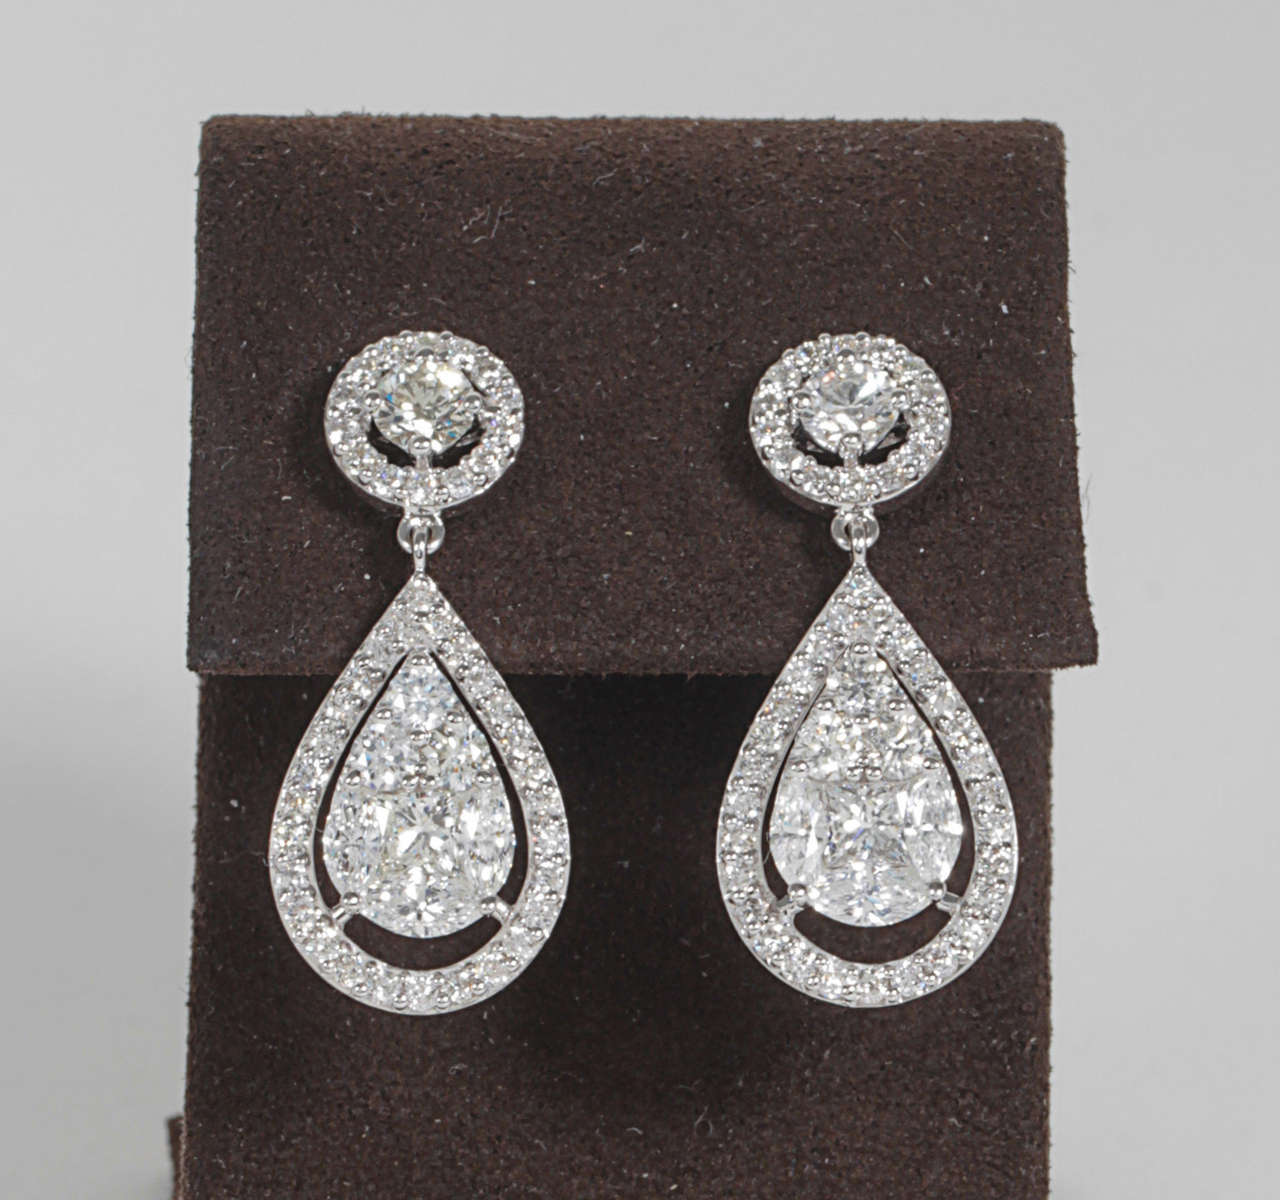 3.55 carats of exquisitely cut diamonds set in 18k white gold.